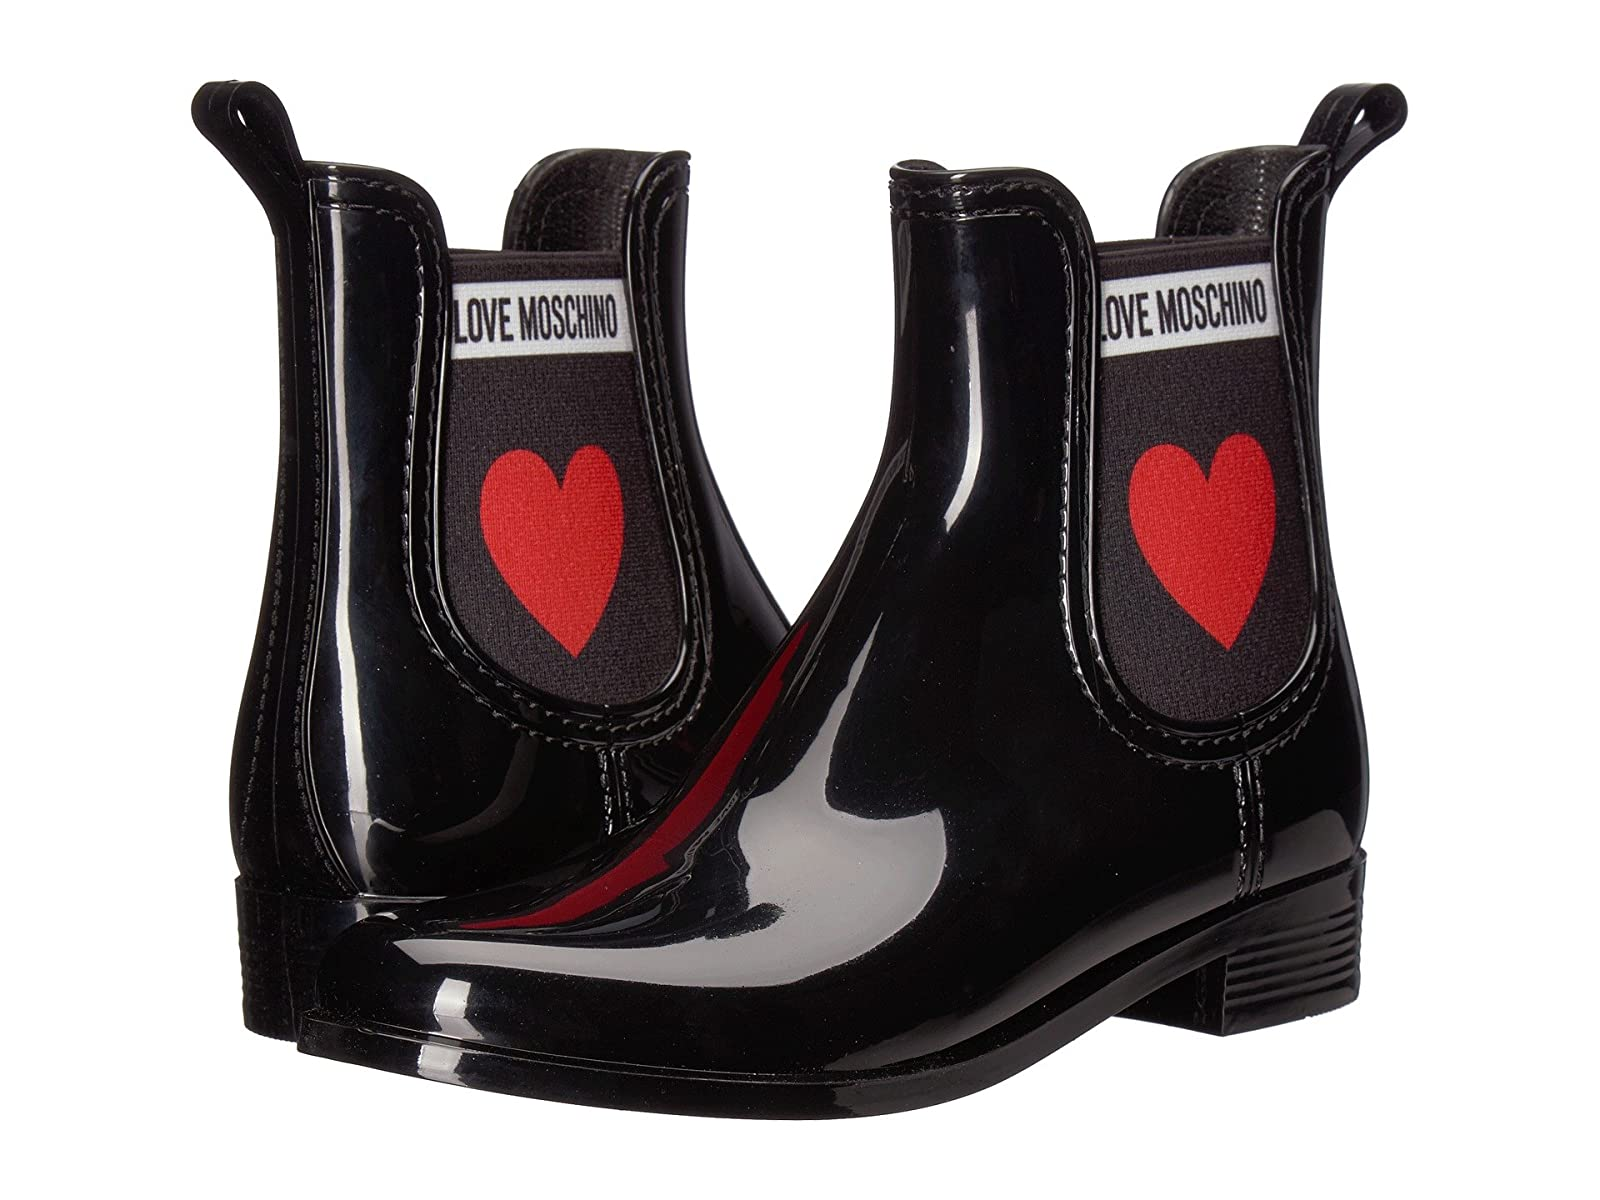 LOVE Moschino Rain BootAffordable and distinctive shoes